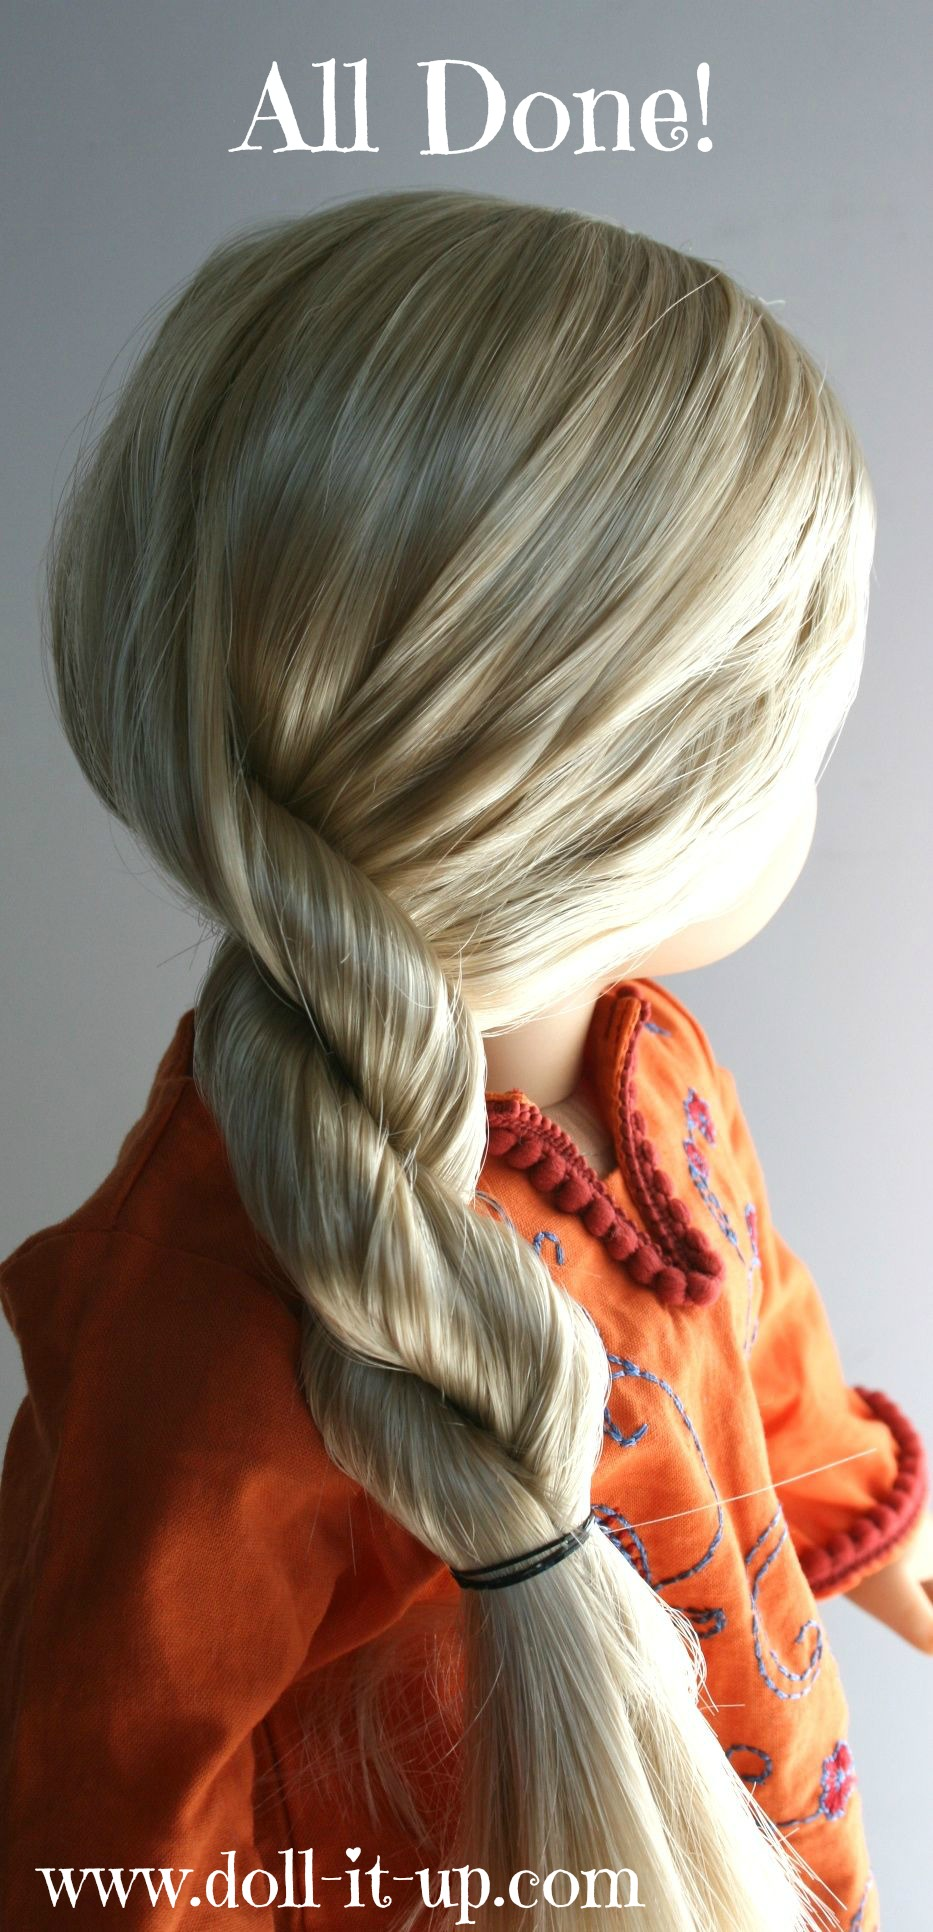 How To Rope Braid Doll It Up